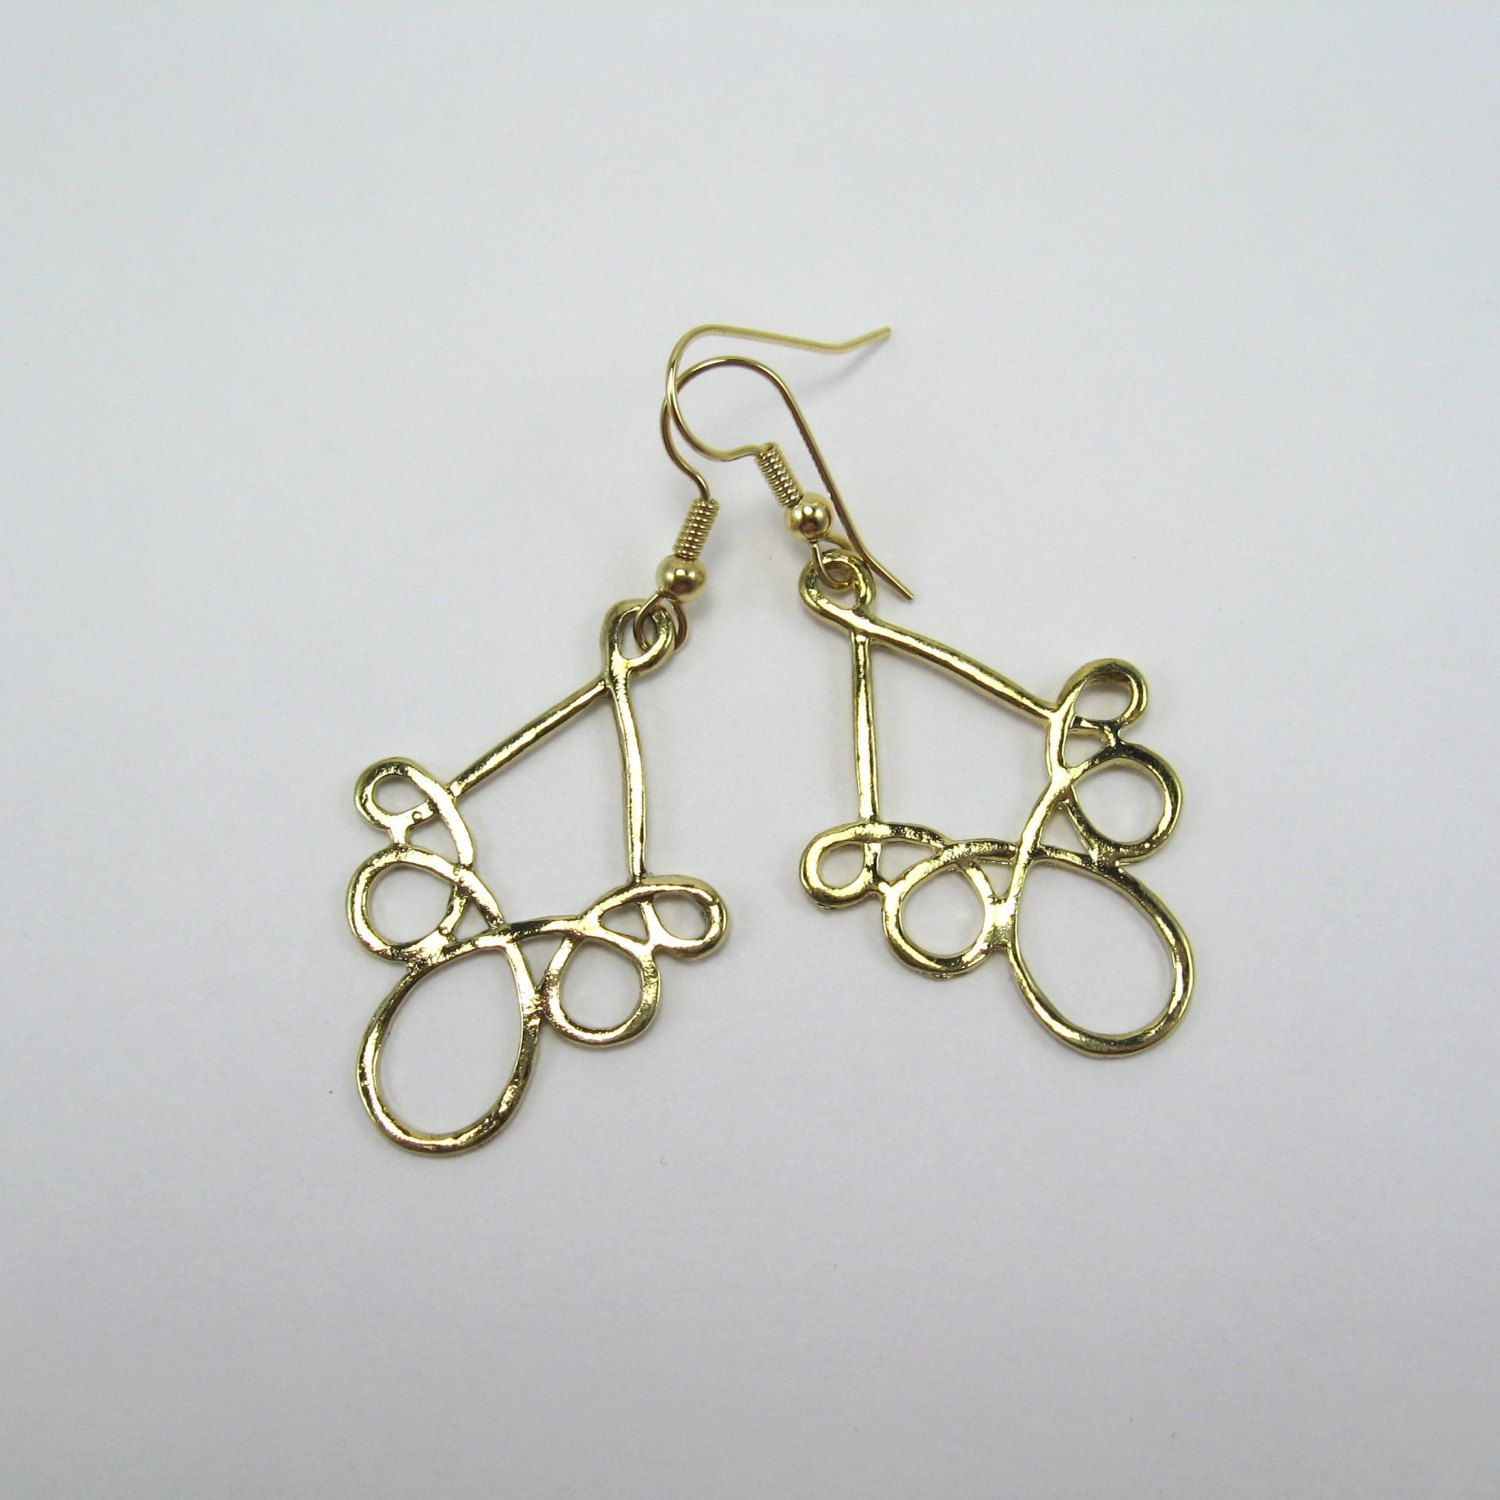 Gold Dangle Surgical Steel Earrings Nickel Free For Sensitive Ears Unique